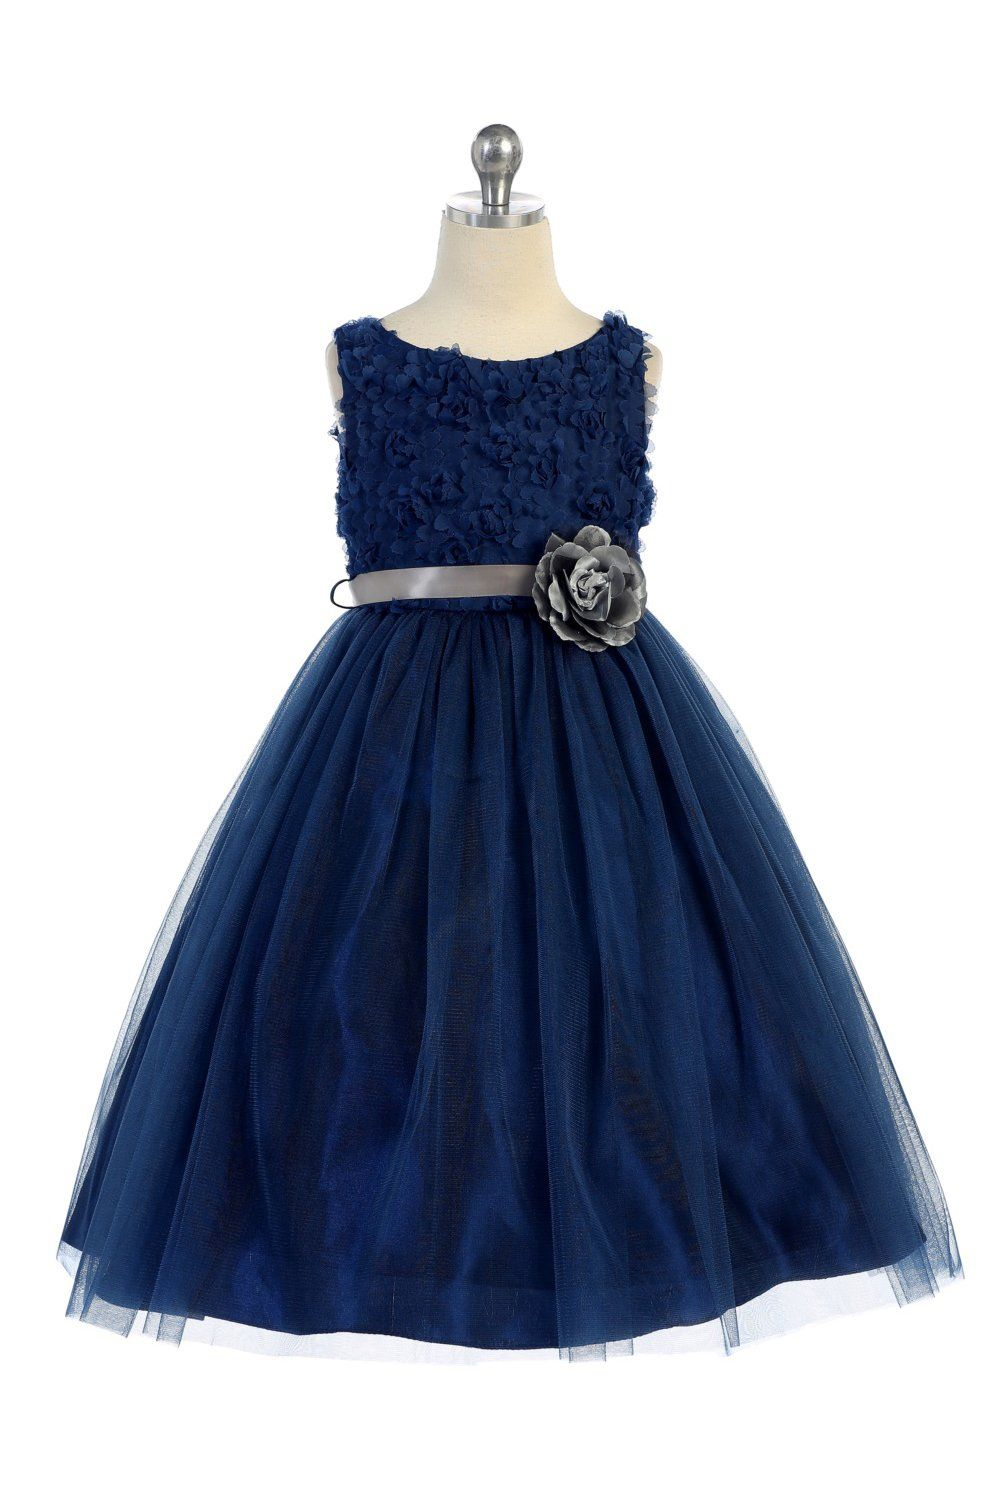 896f77f0ede Navy Blue Sleeveless Tulle Dress with Mesh Rolled Flowers Flower Girl Dress